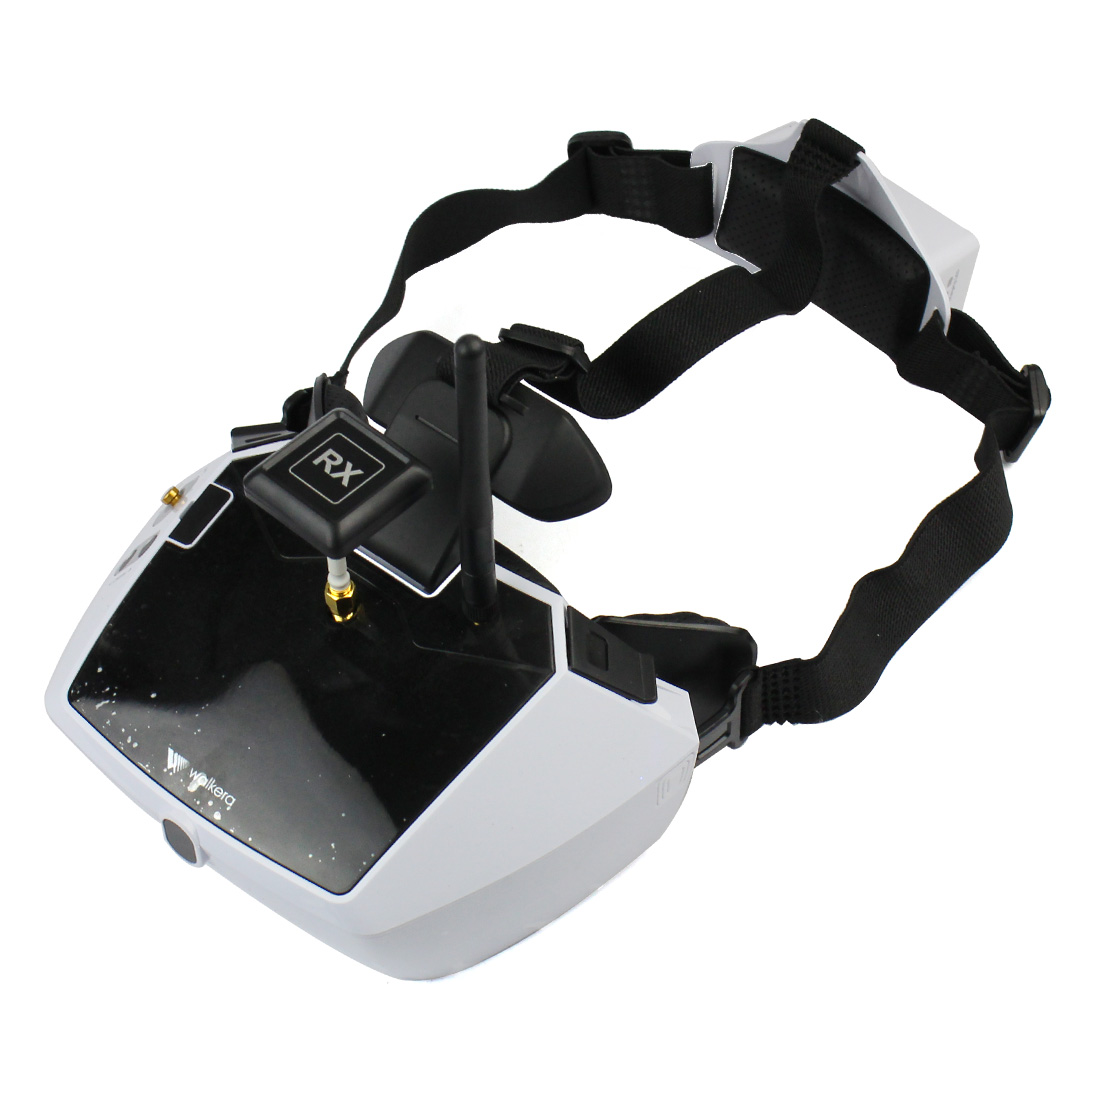 Original Walkera 5.8G 40channels Goggle4 Goggle 4 FPV Video image transmission glasses FPV spectacles with antenna  F18065